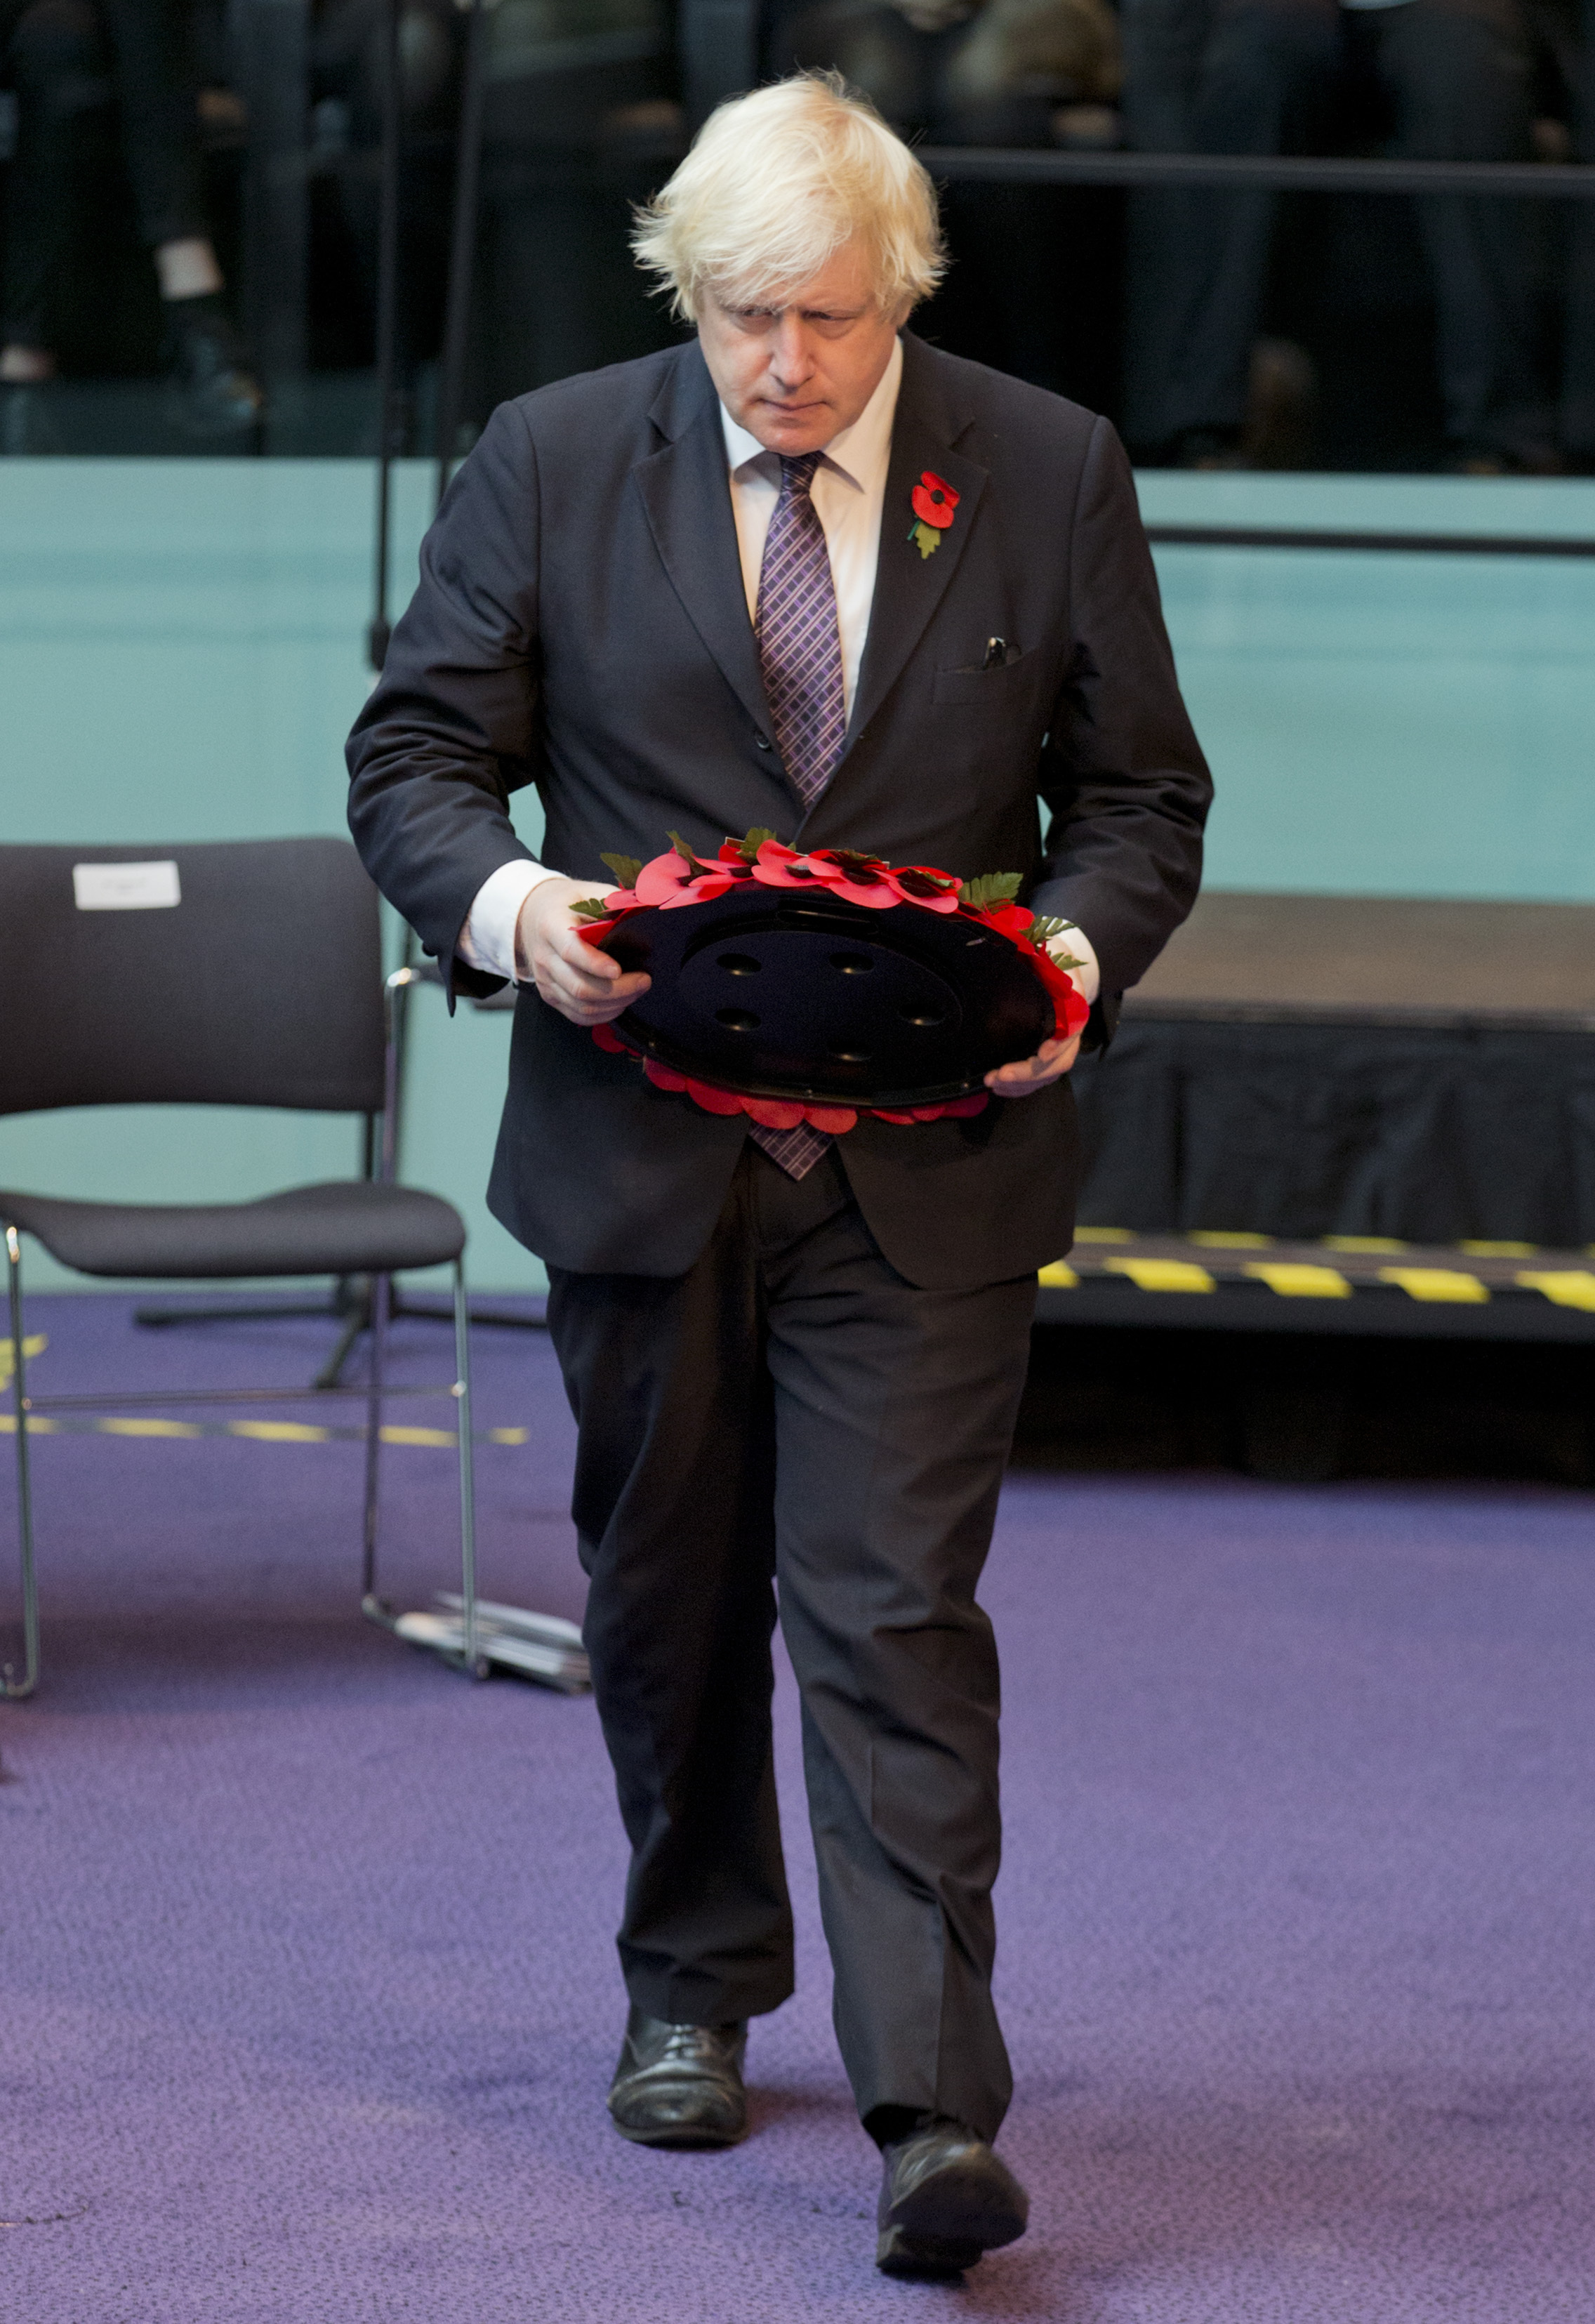 Mayor of London Boris Johnson lays a wreath during the GLA (Greater London Authority) Annual Service of Remembrance at City Hall in London.